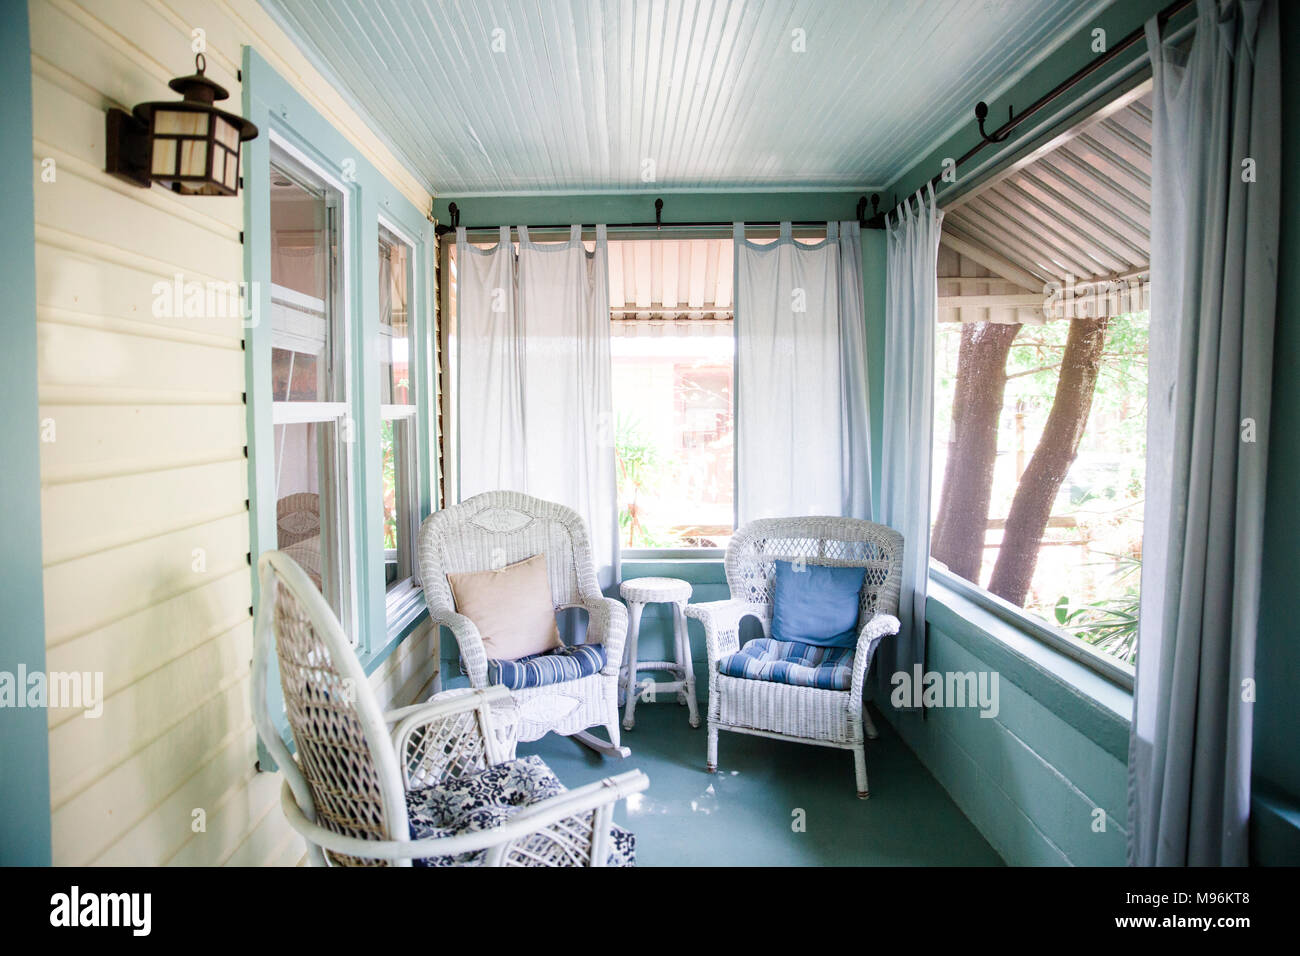 Wicker chairs on outdoor porch - Stock Image